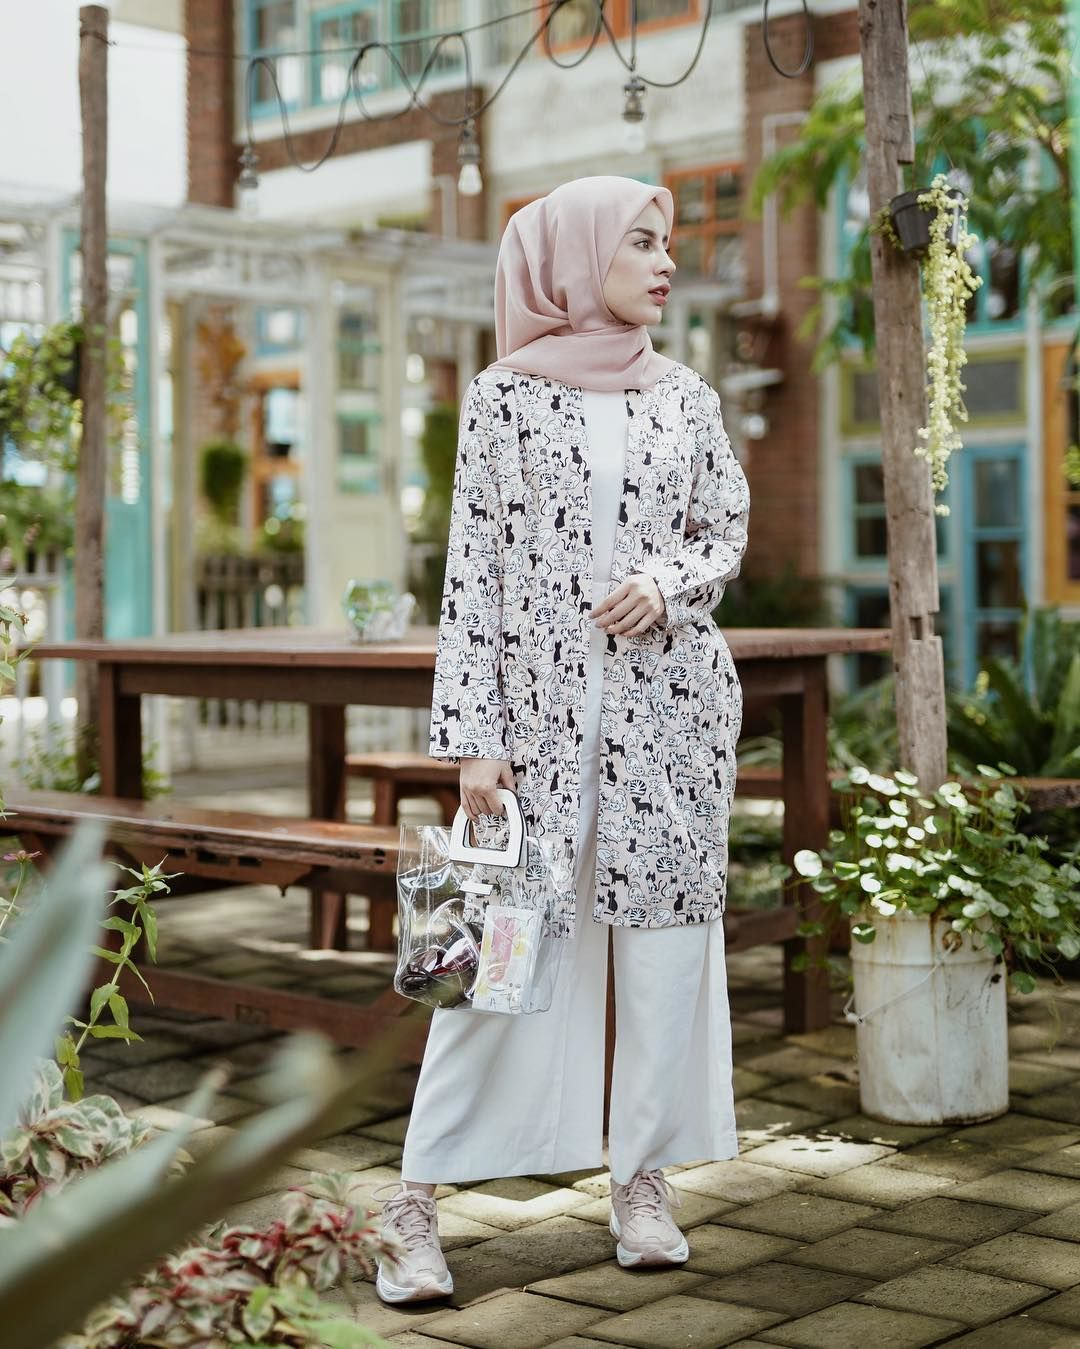 5 Fashion Item Statement untuk Style Hijab ke Pantai